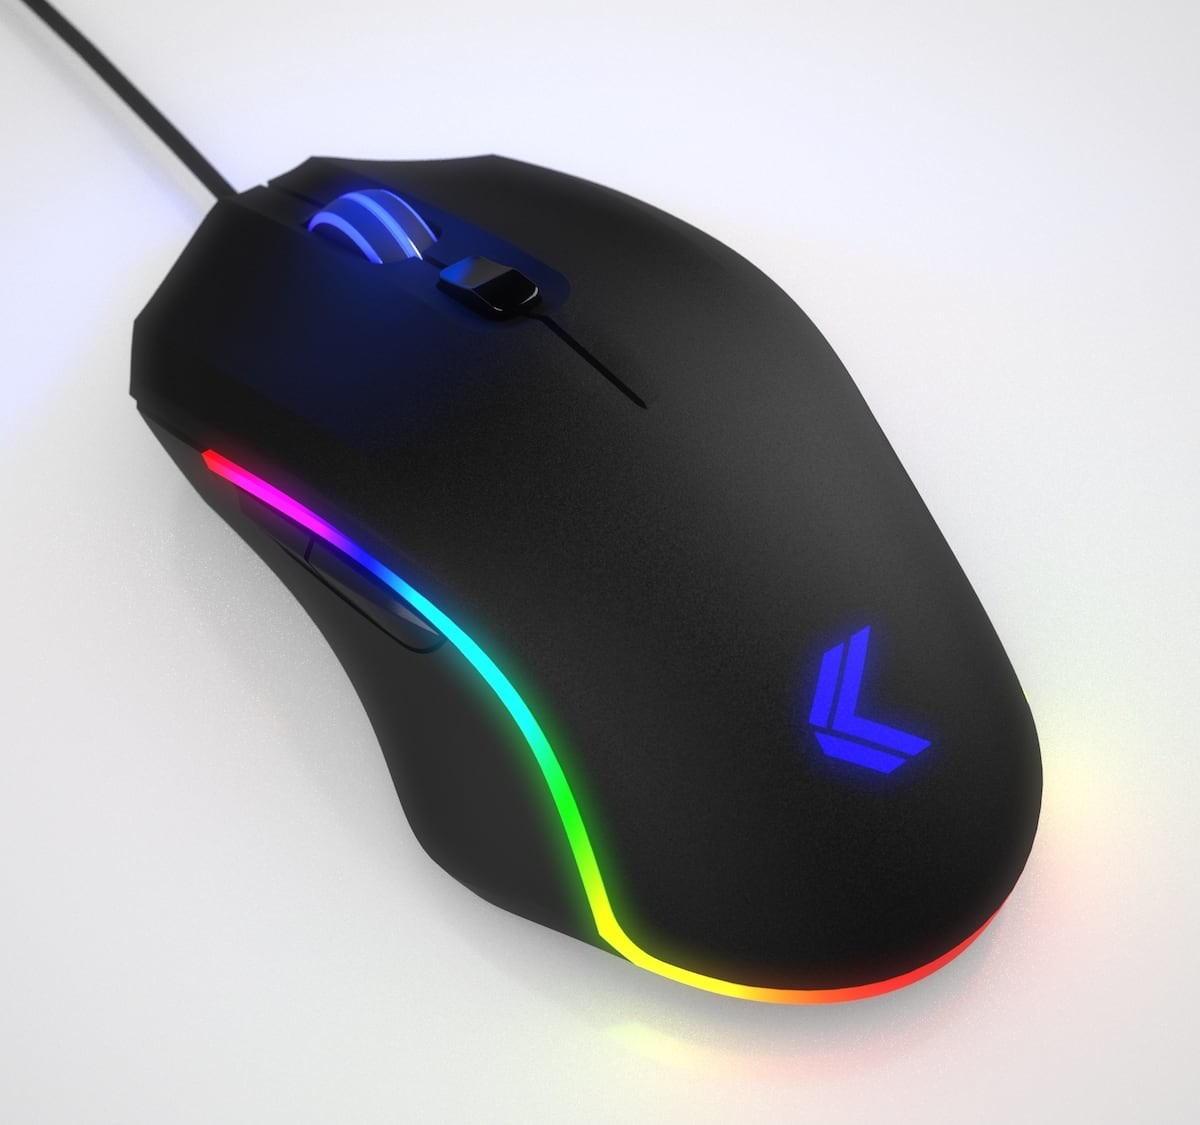 Kinesis Gaming Vektor RGB Programmable Gaming Mouse has an ergonomic shape for smaller hands